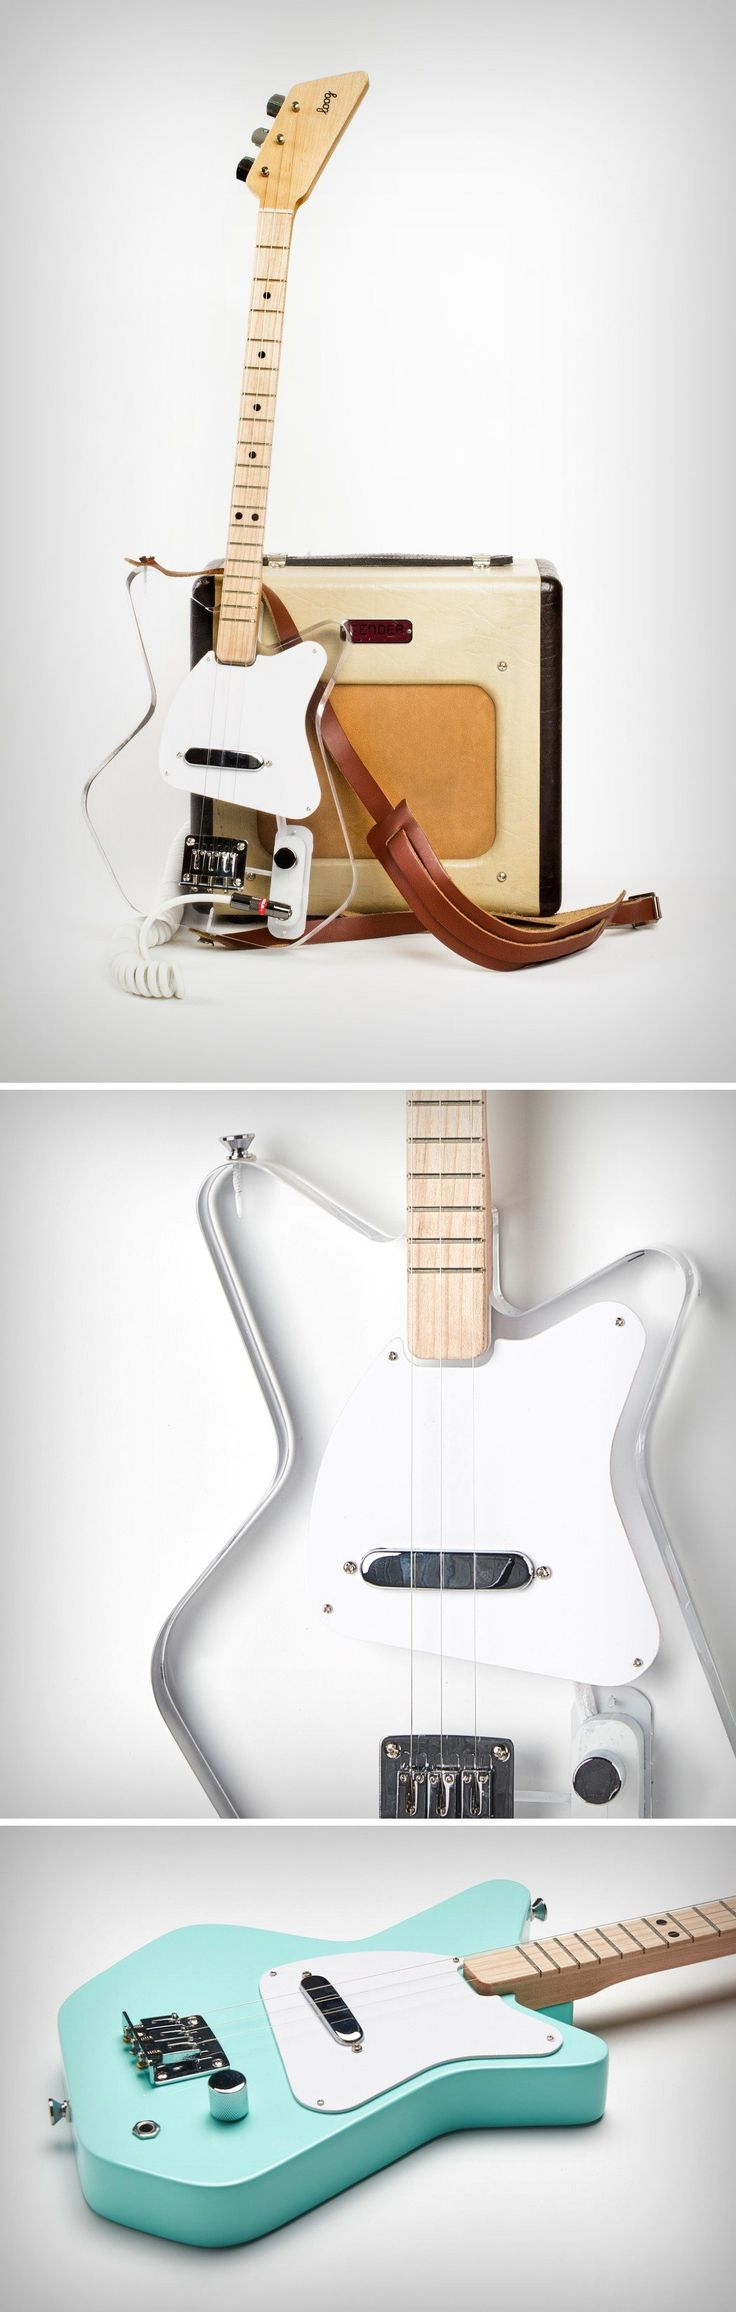 The new Loog guitars (Mini & Pro) are designed around a 3-string layout (one less than a ukulele). The strings however come with standard guitar tuning, making it simple to learn music principles and transition to a regular guitar when the time is right. The Loog even comes with its own mini-ecosystem of flash cards to make the learning process easy, and an app that teaches you how to play the latest and most popular songs.